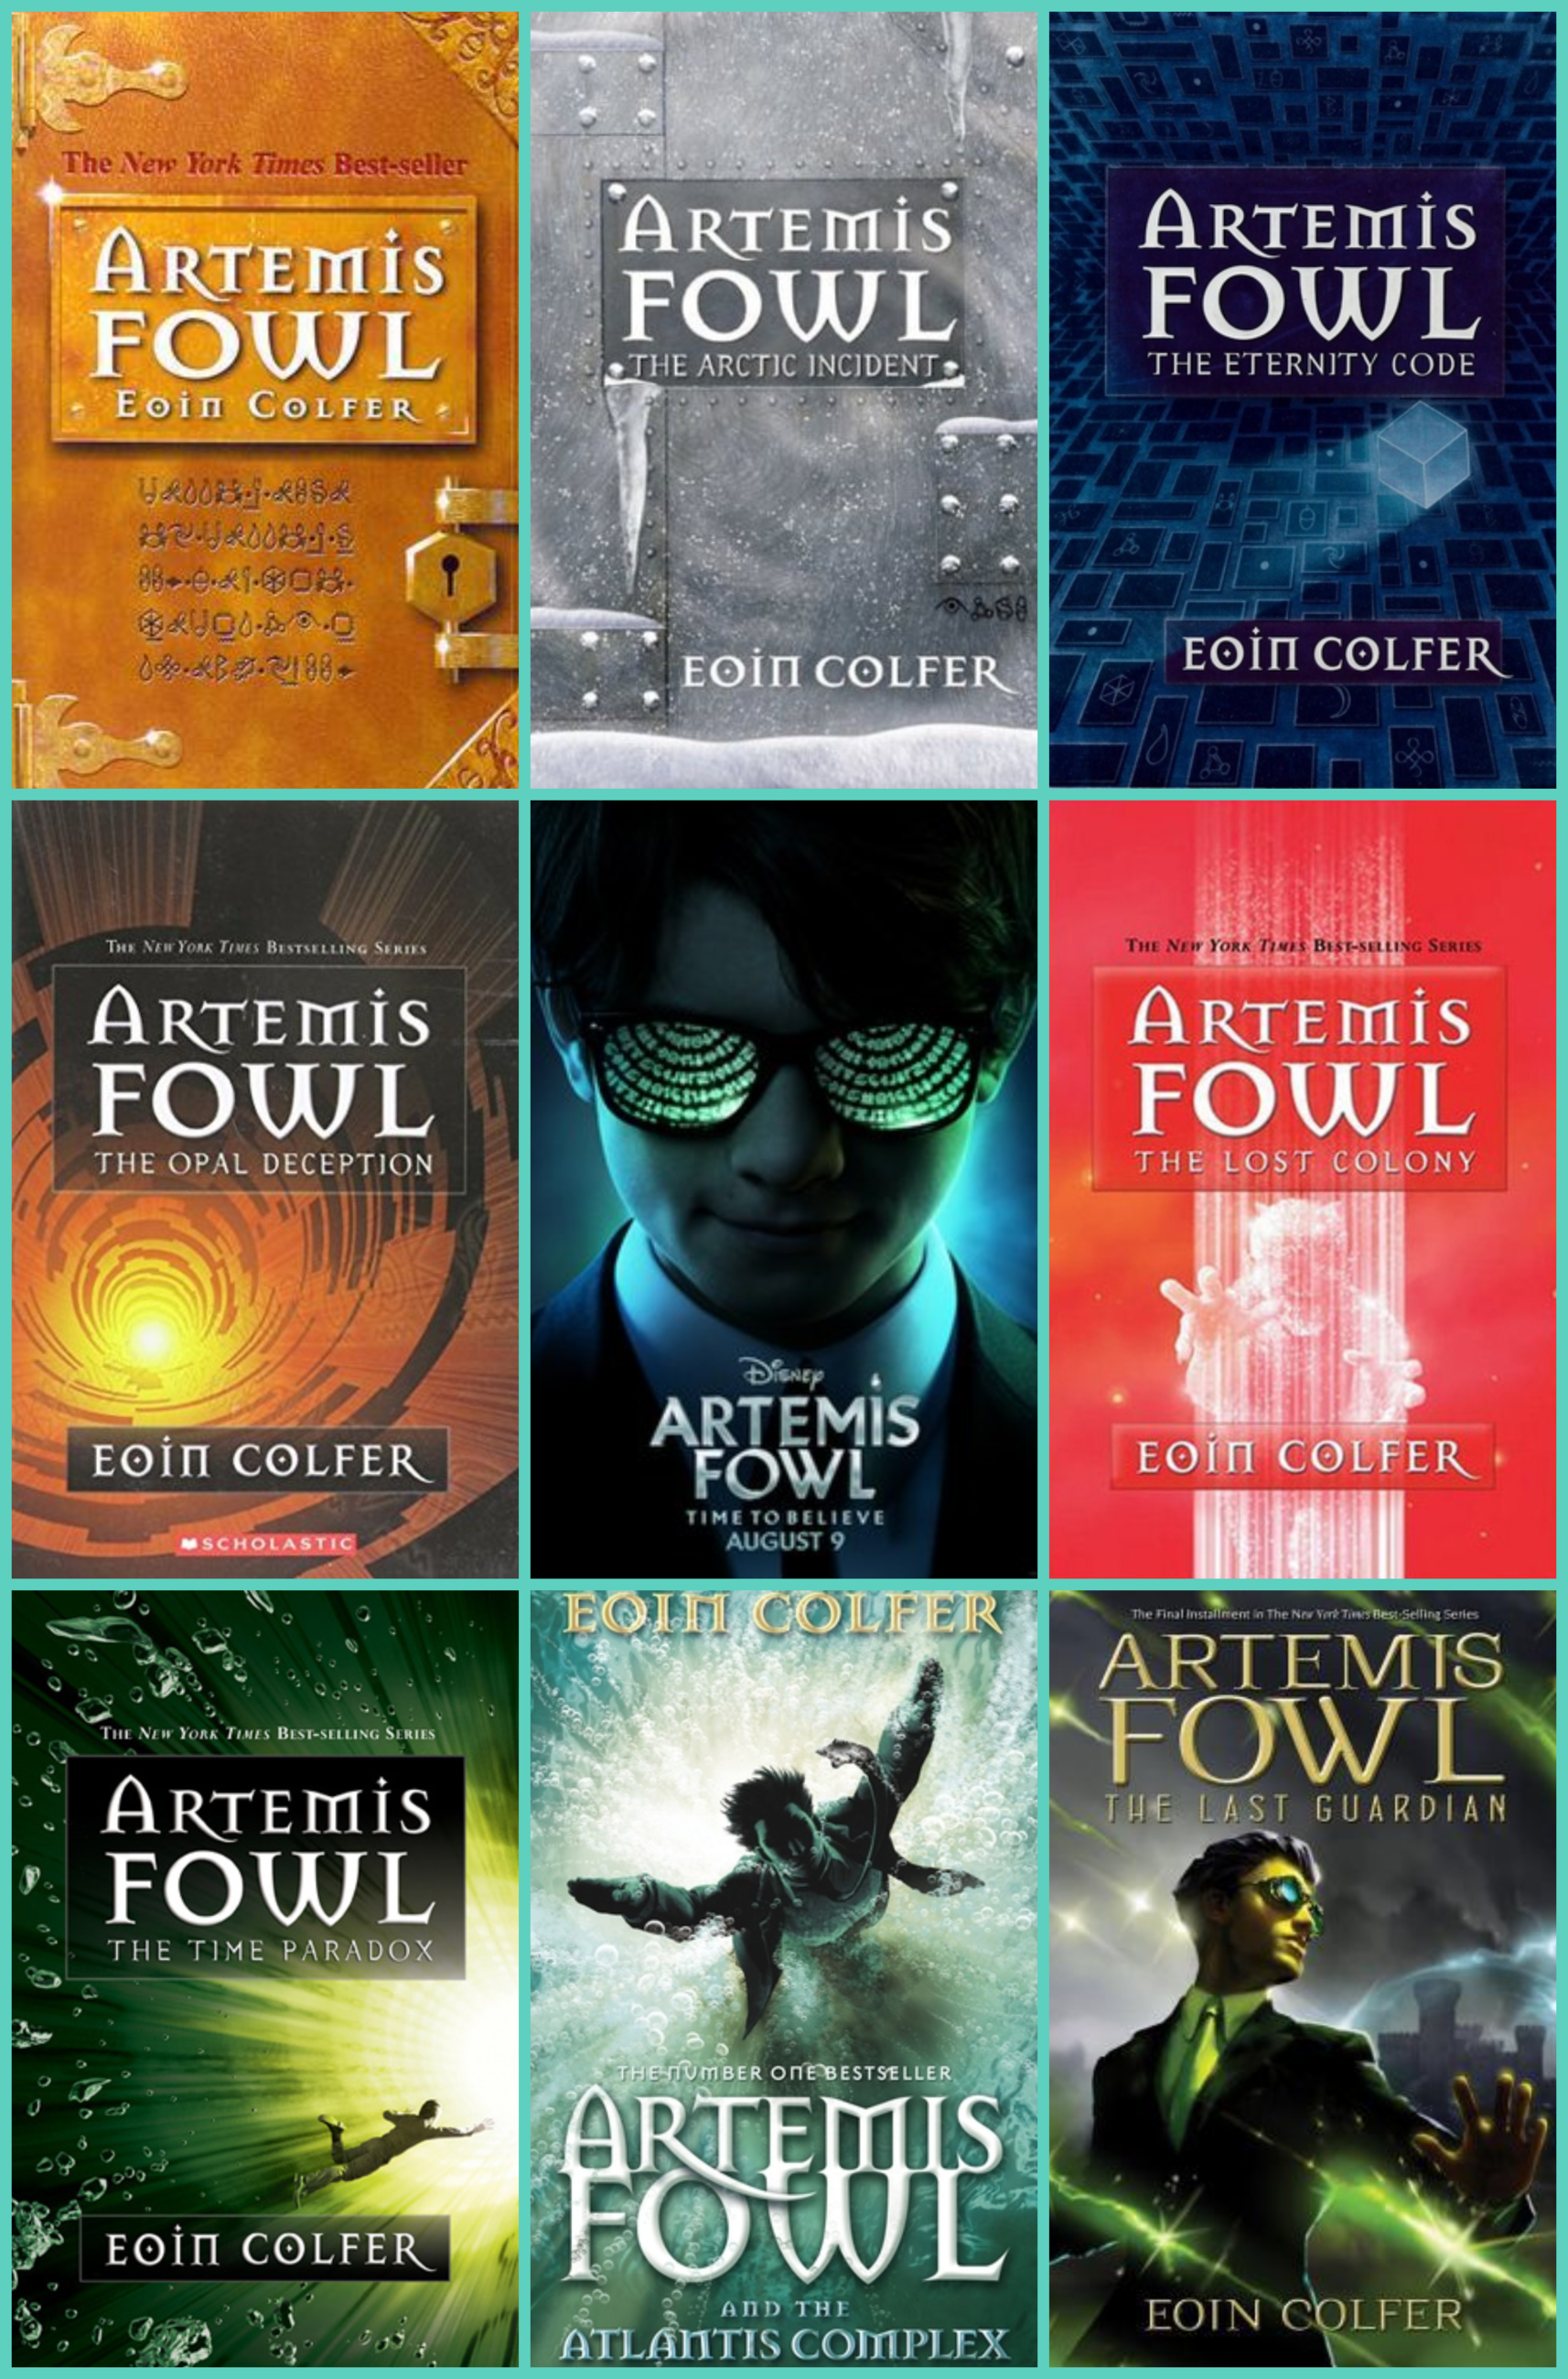 Artemis Fowl Series Collage with Movie Poster in the Center